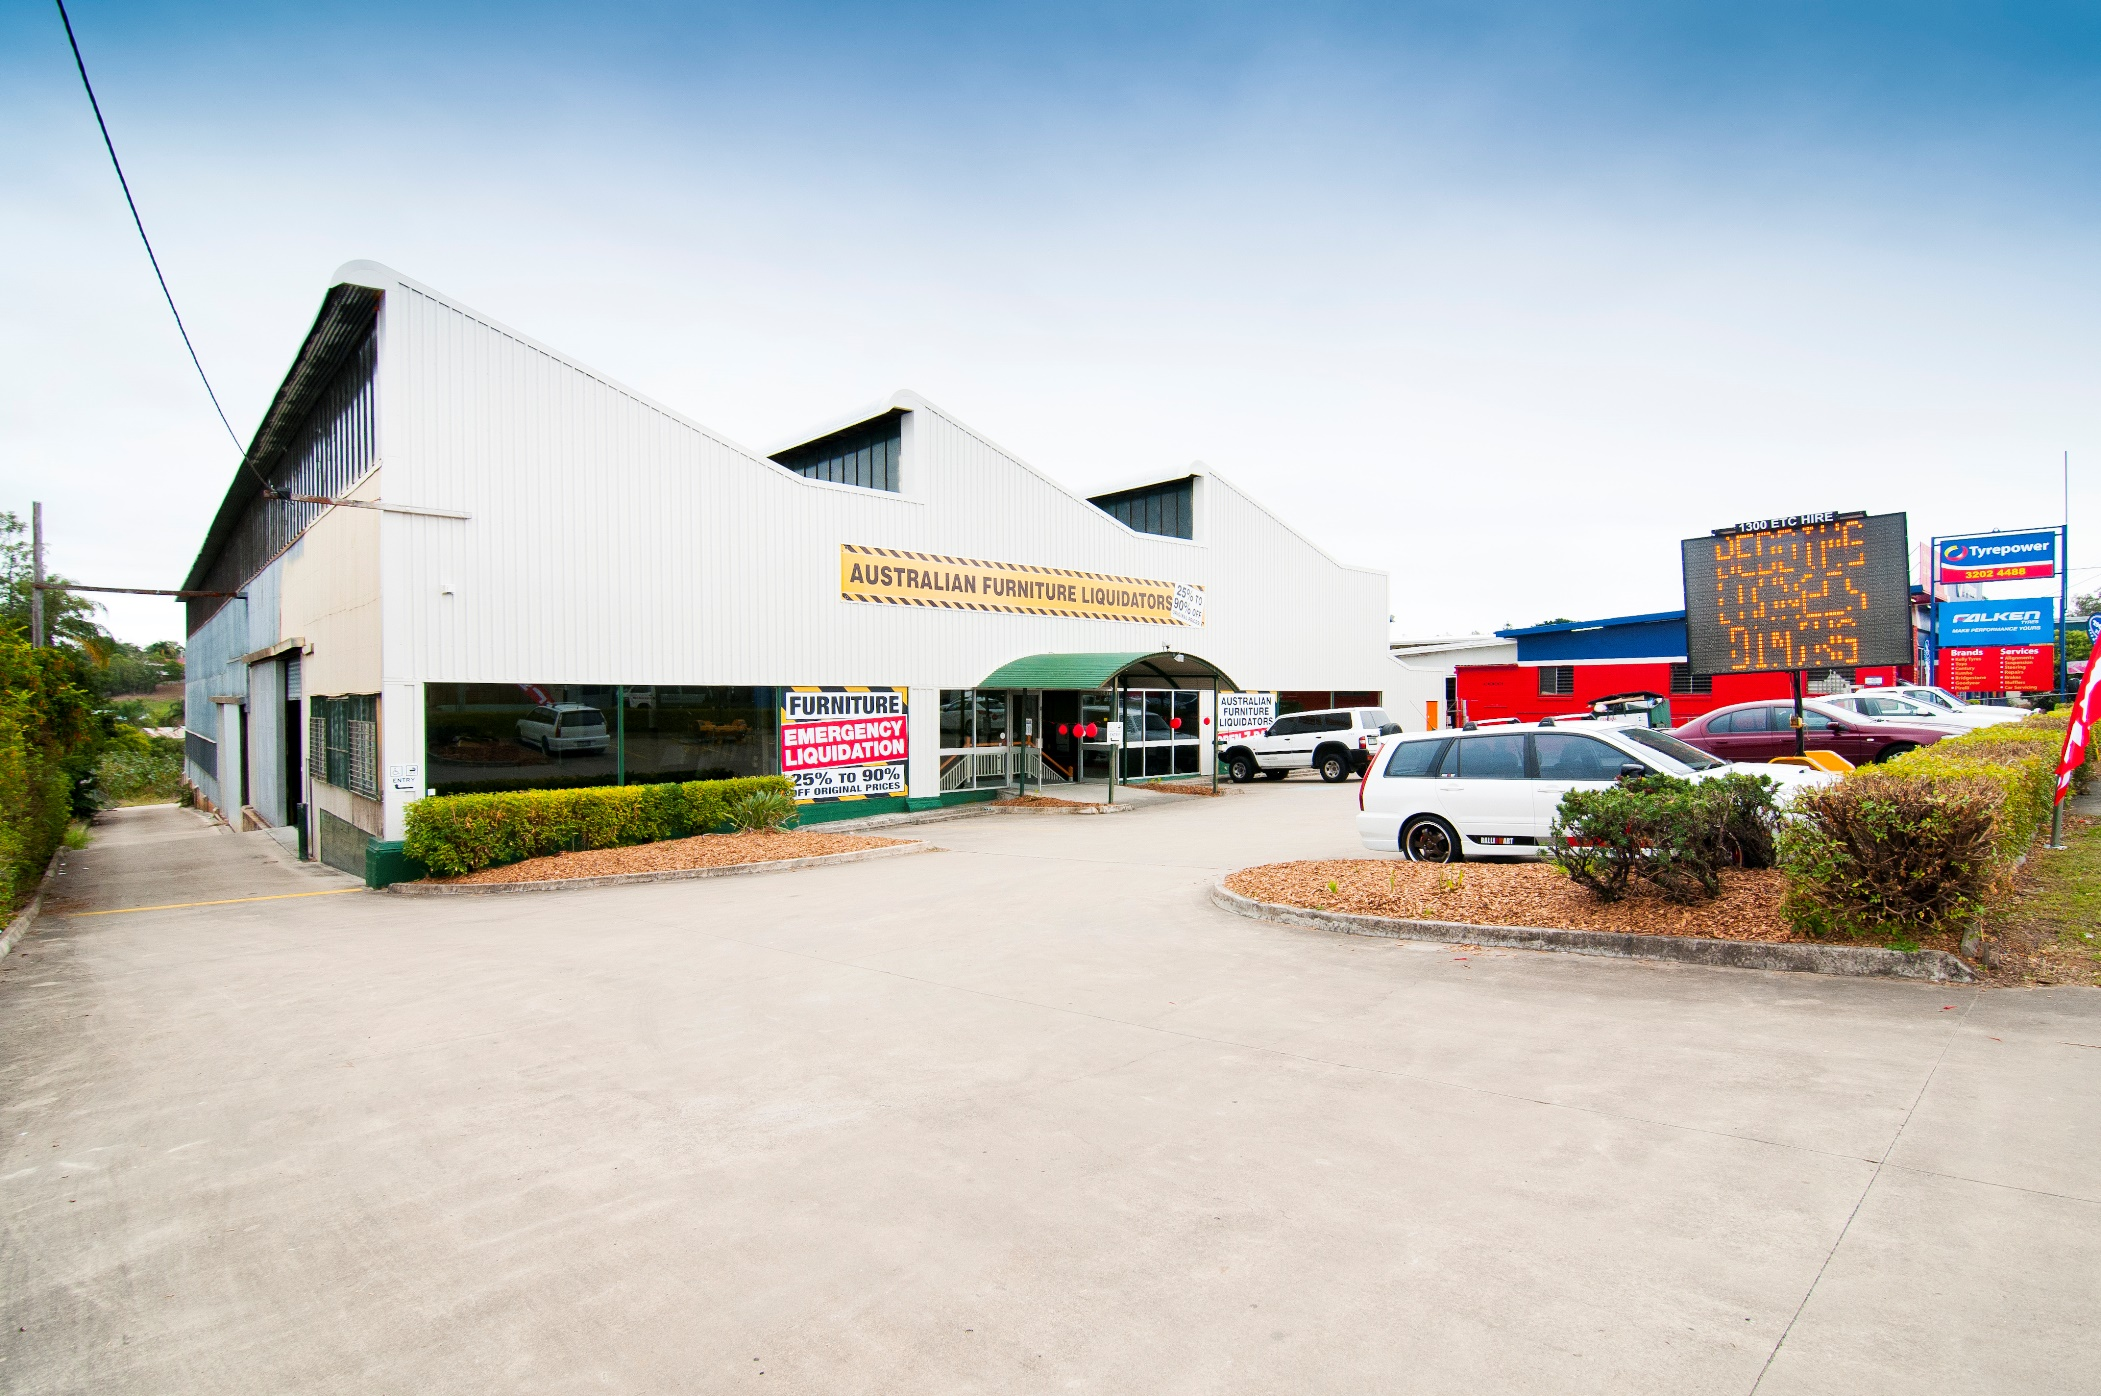 Tenanted Warehouse At Ipswich Qld For Sale At Auction